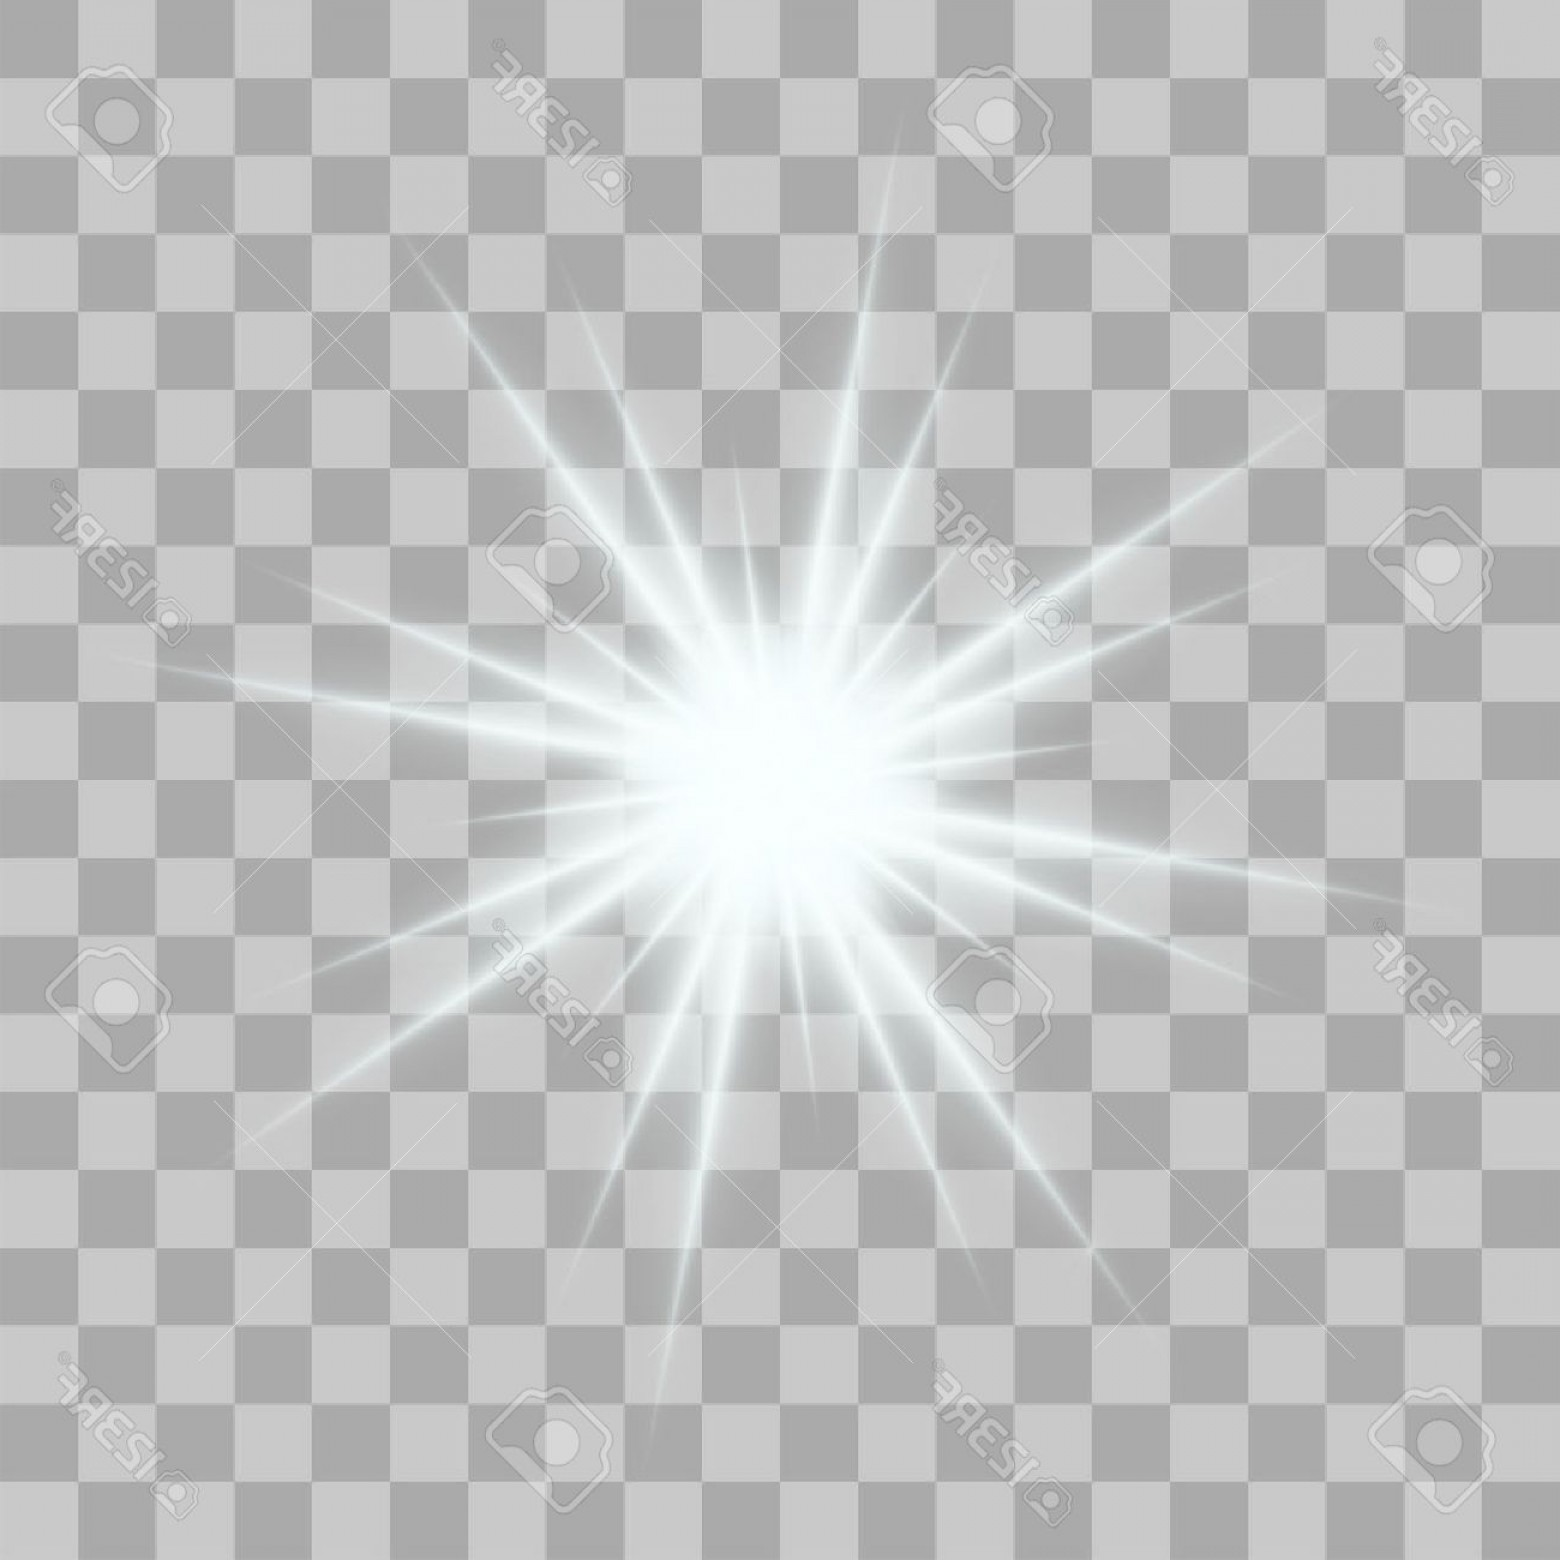 White Light Burst Png (108+ images in Collection) Page 1.